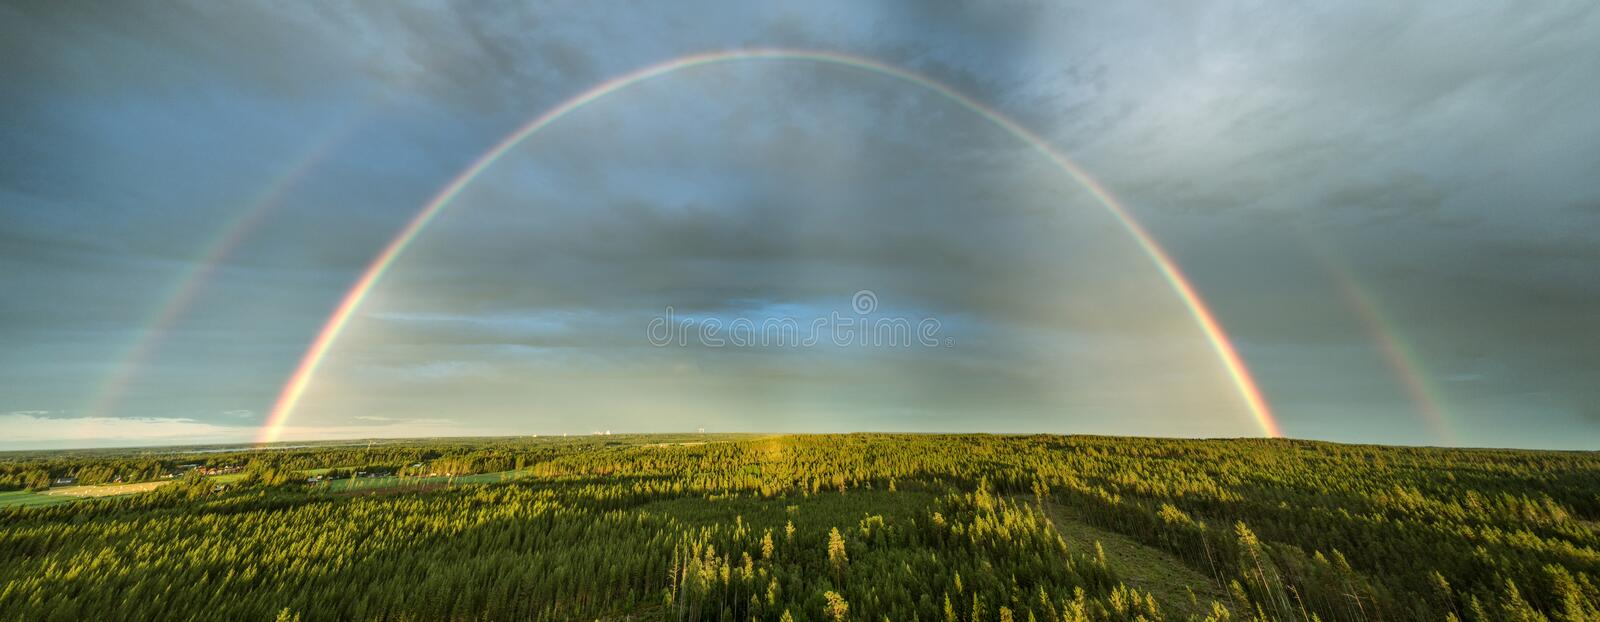 High detailed drone panorama of double rainbow over summer pine tree forest, very clear skies and clean rainbow colors. This photo. Stitched from 6 shots royalty free stock image